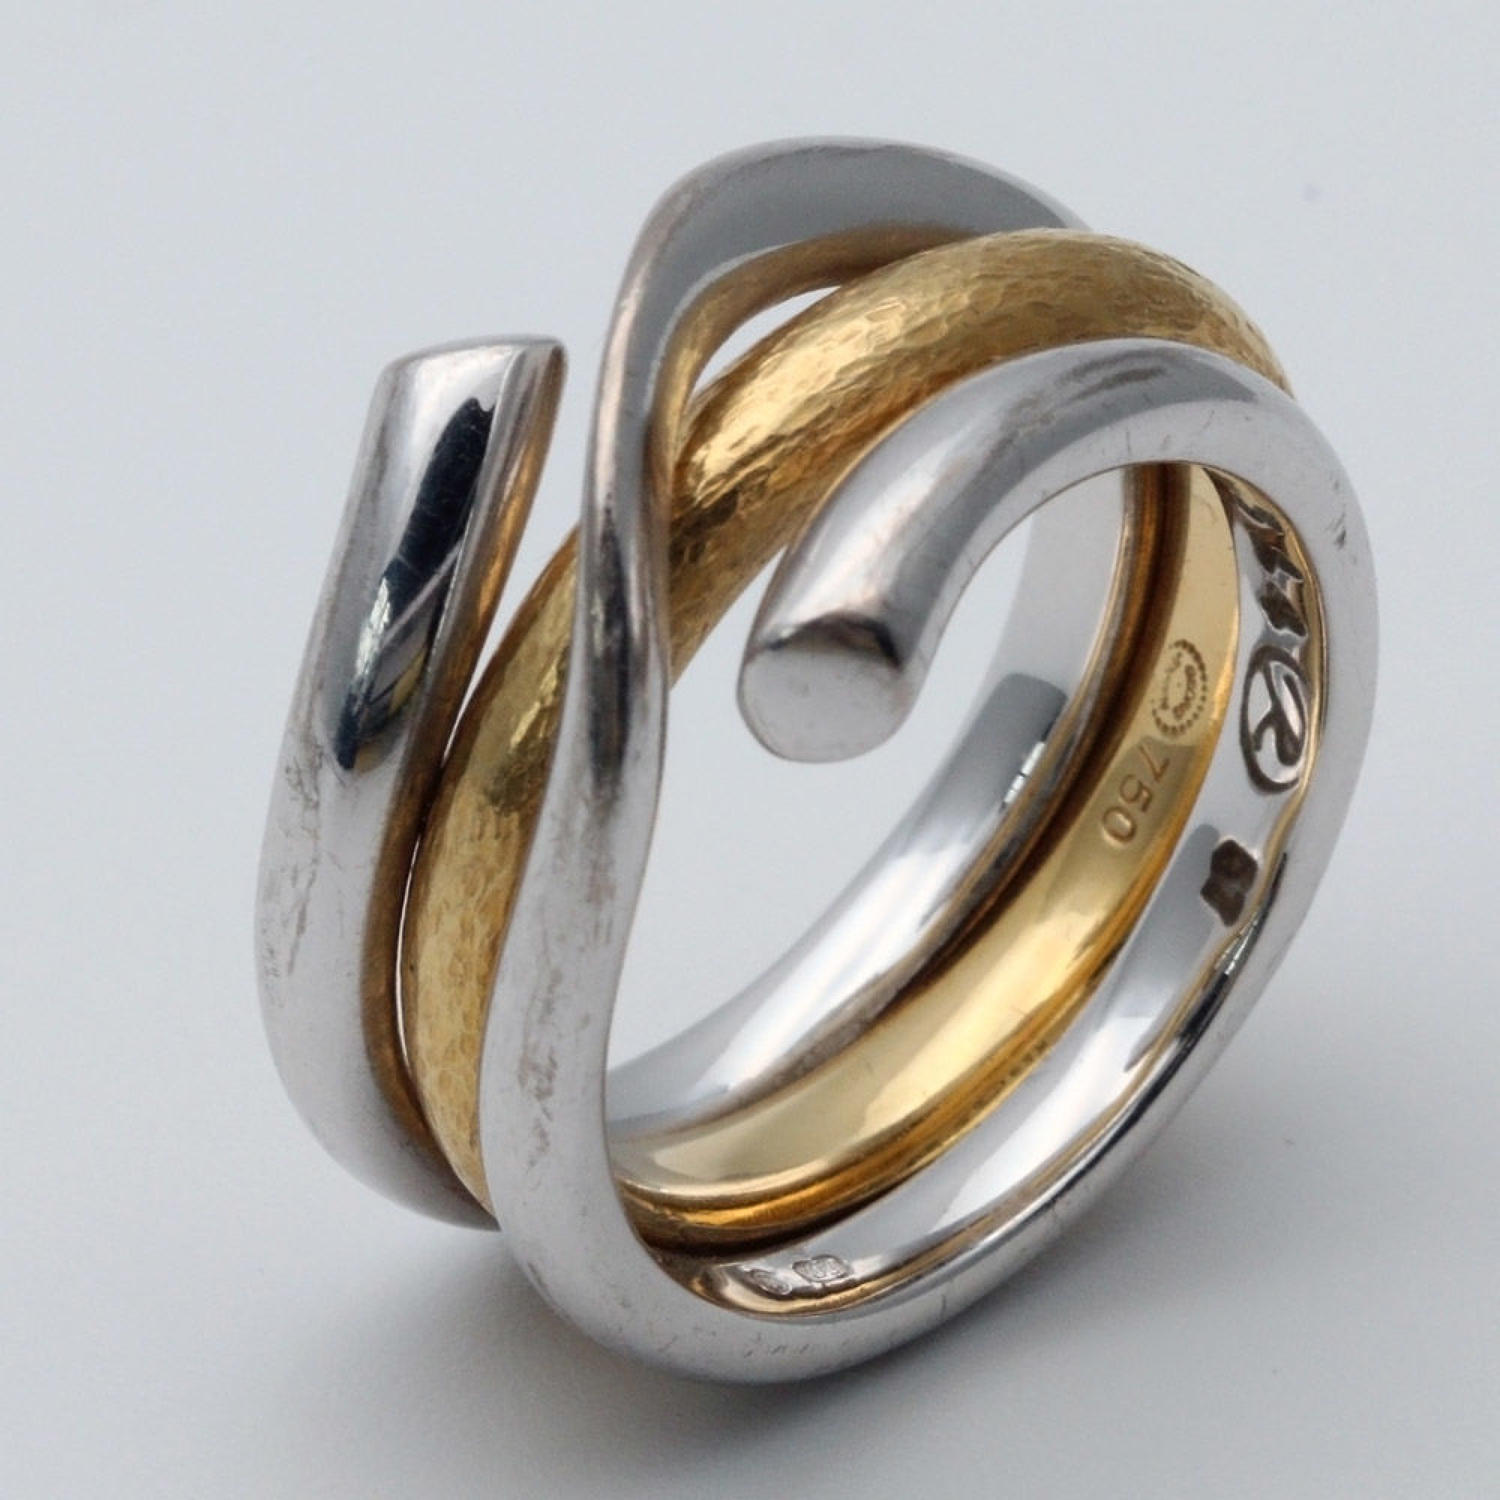 Georg Jensen 18ct Gold Double Ring